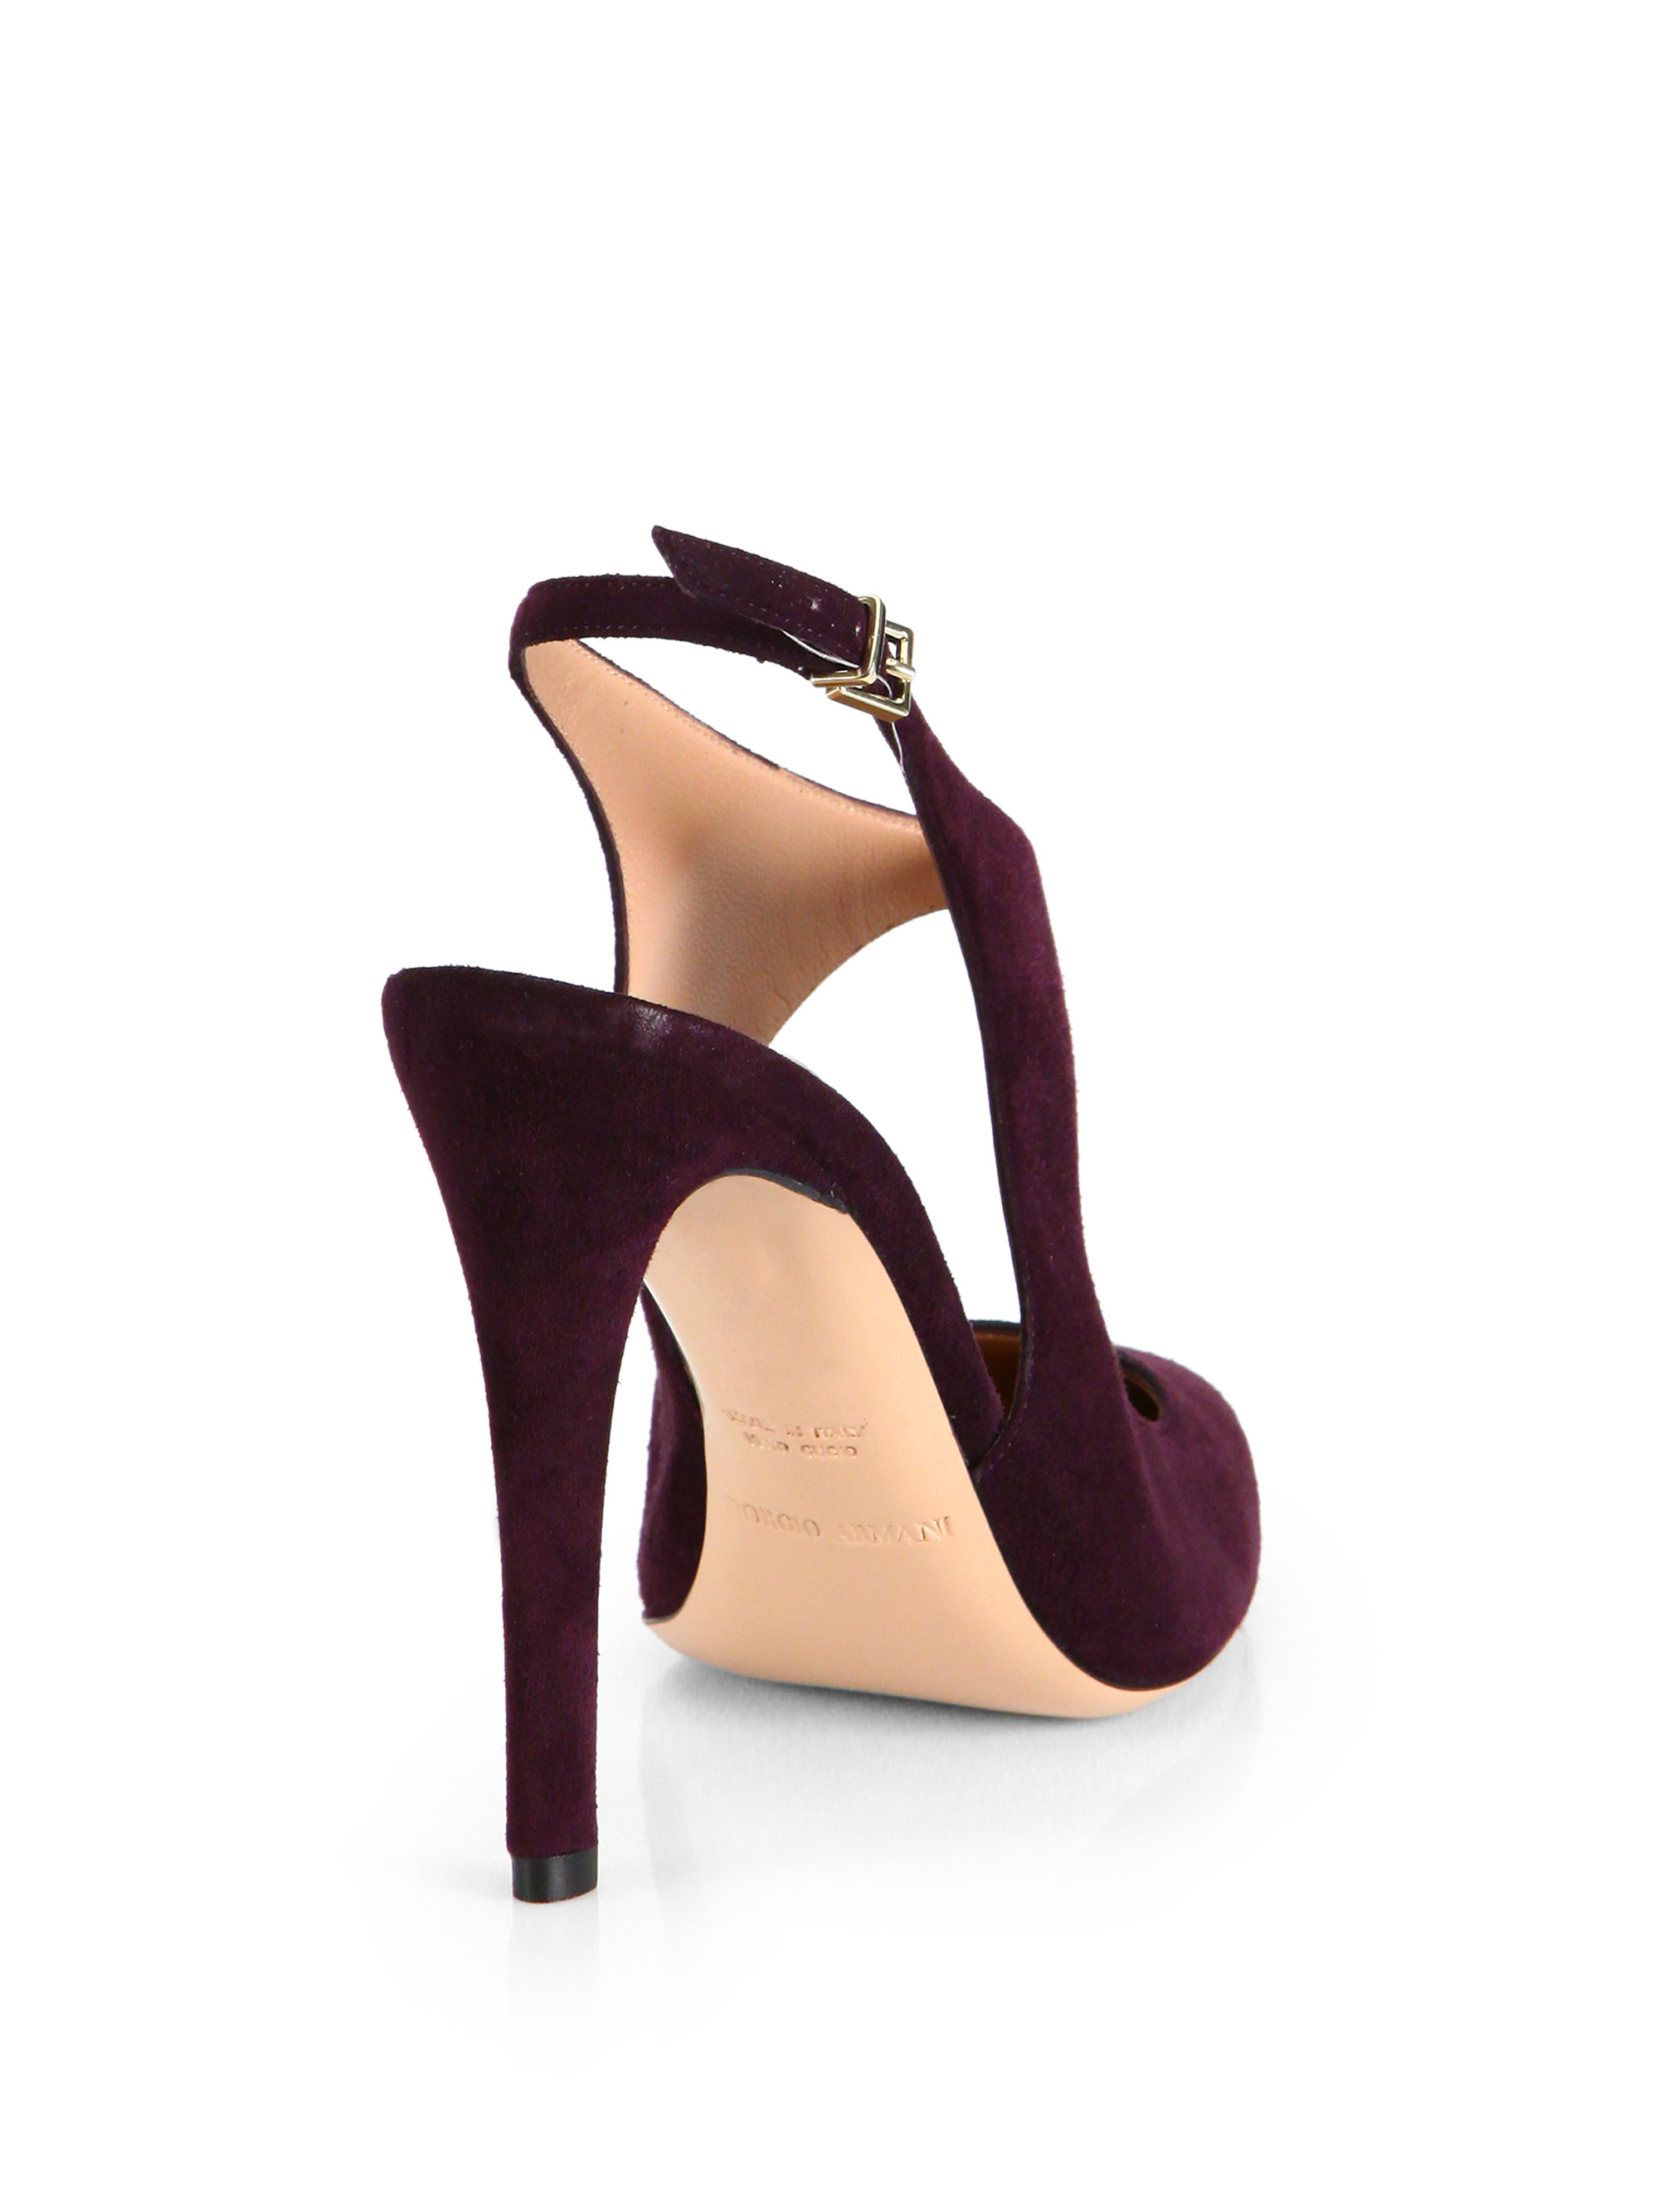 Lyst - Giorgio armani Suede Cutout Slingback Pumps in Purple